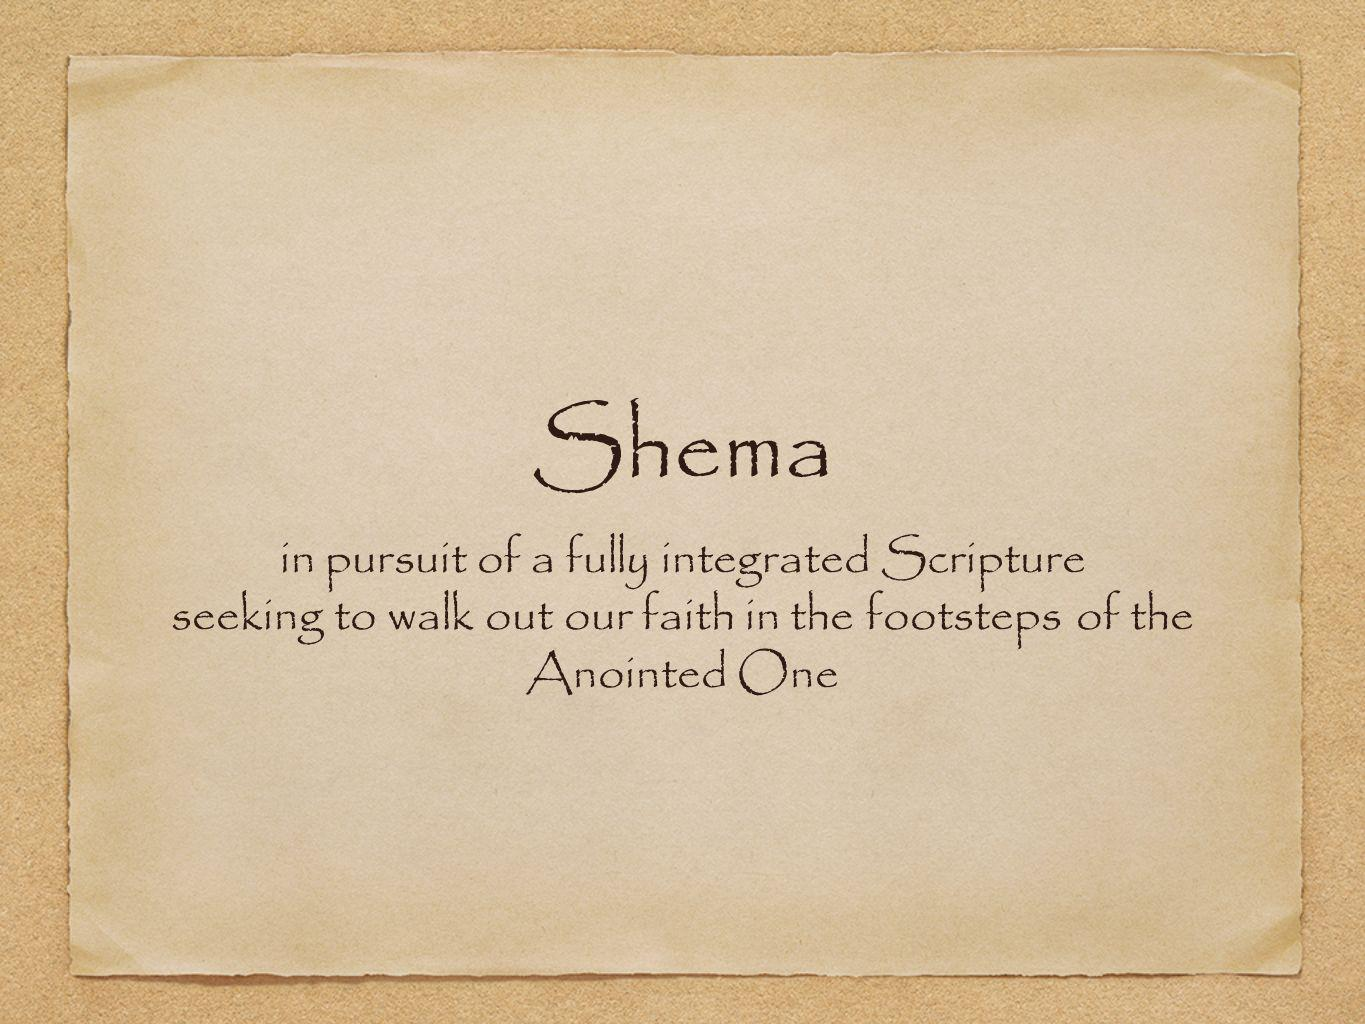 Shema in pursuit of a fully integrated Scripture